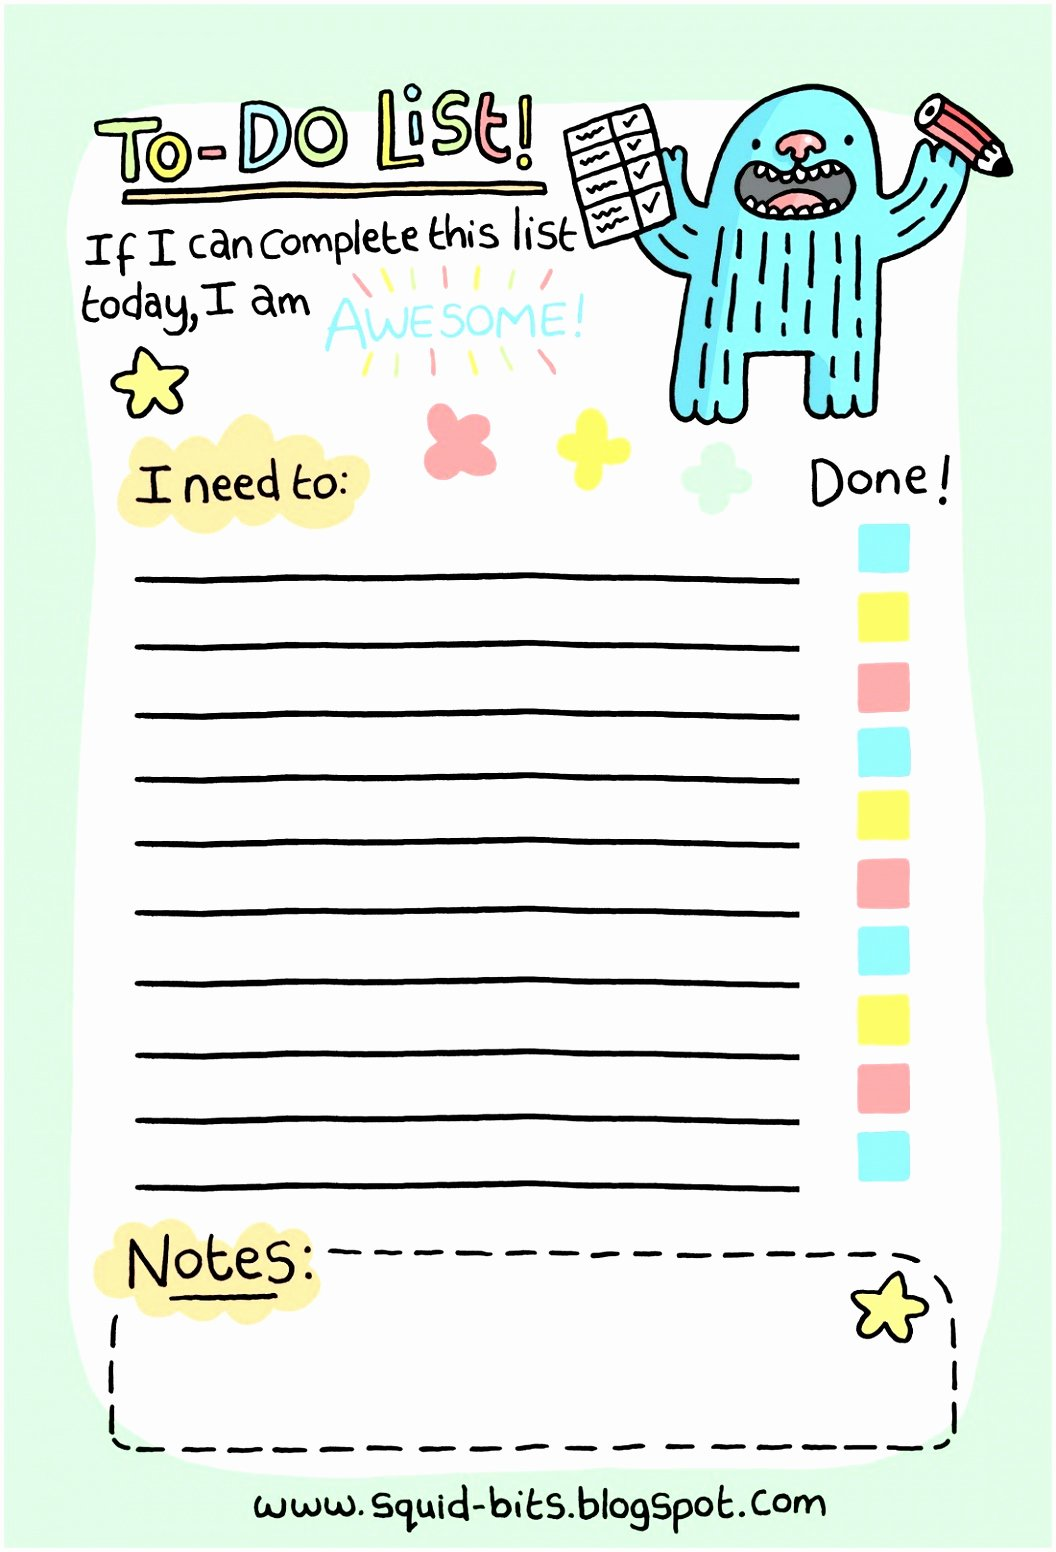 Todo List Template Word Unique 7 Daily to Do List Template for Word Tioru